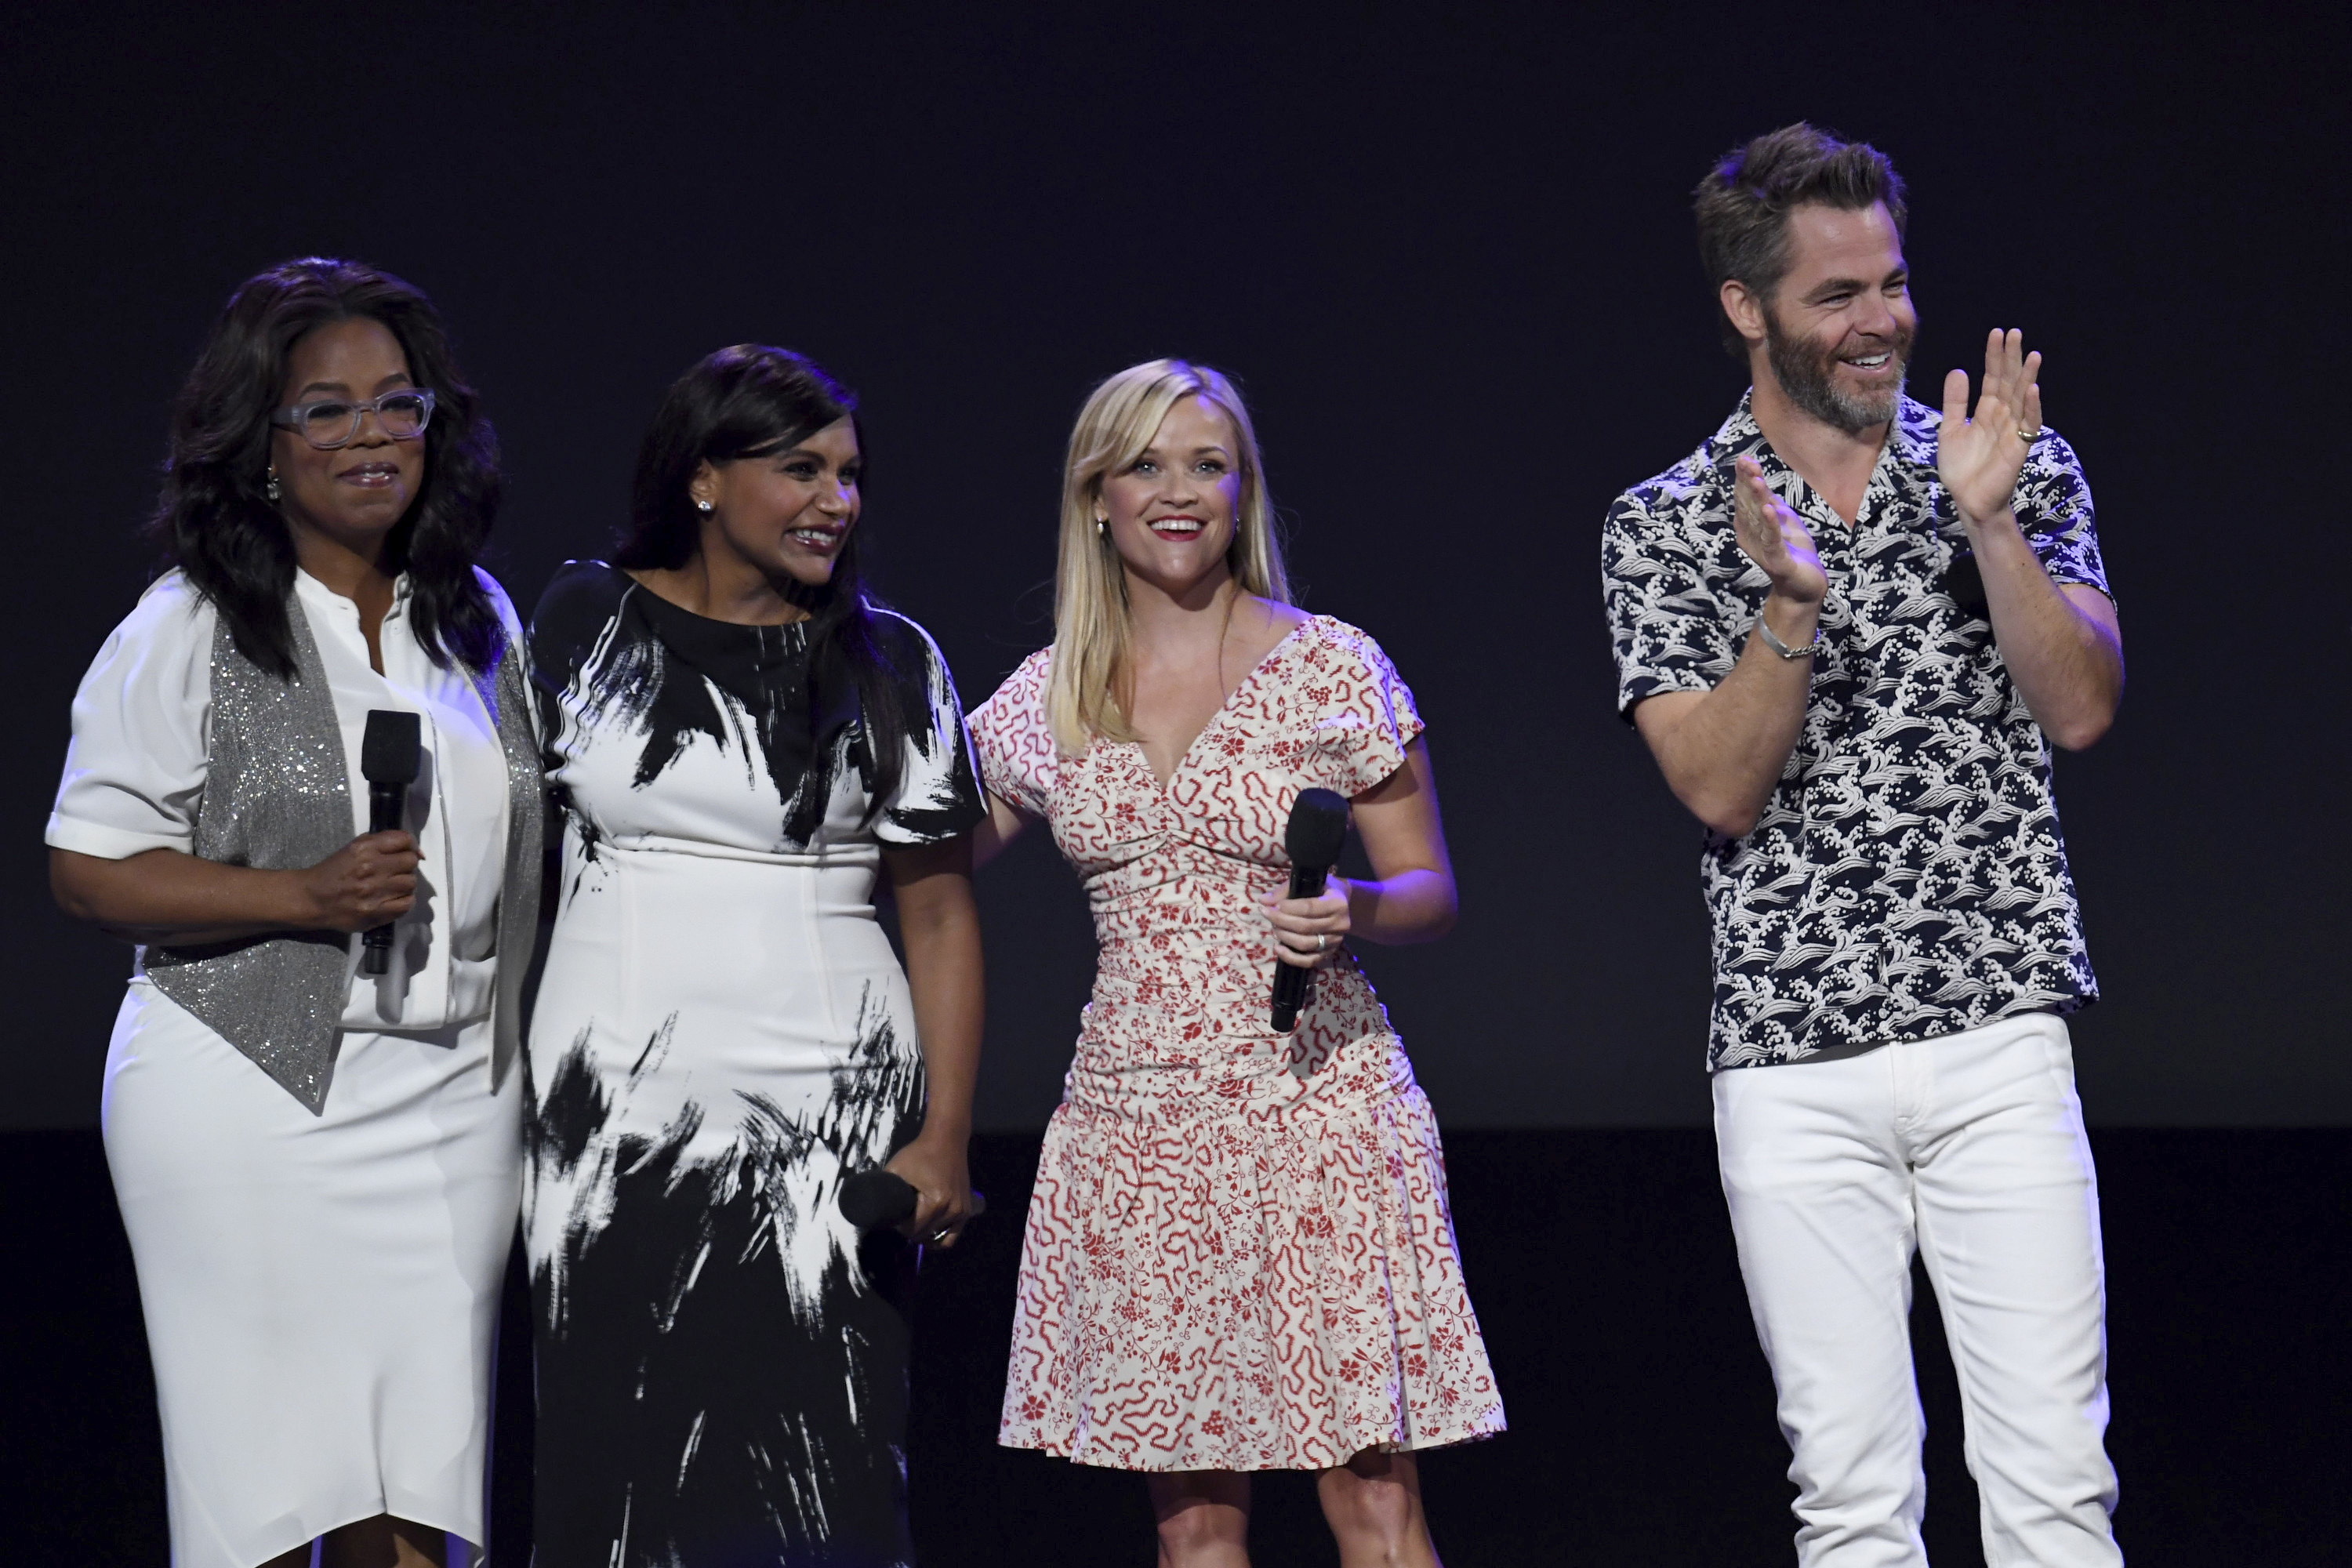 Oprah Winfrey, Mindy Kaling, Reese Witherspoon and Chris Pine attend Disney's Coverage Of The D23 Expo 2017 in Anaheim, Calif., on July 15, 2017.